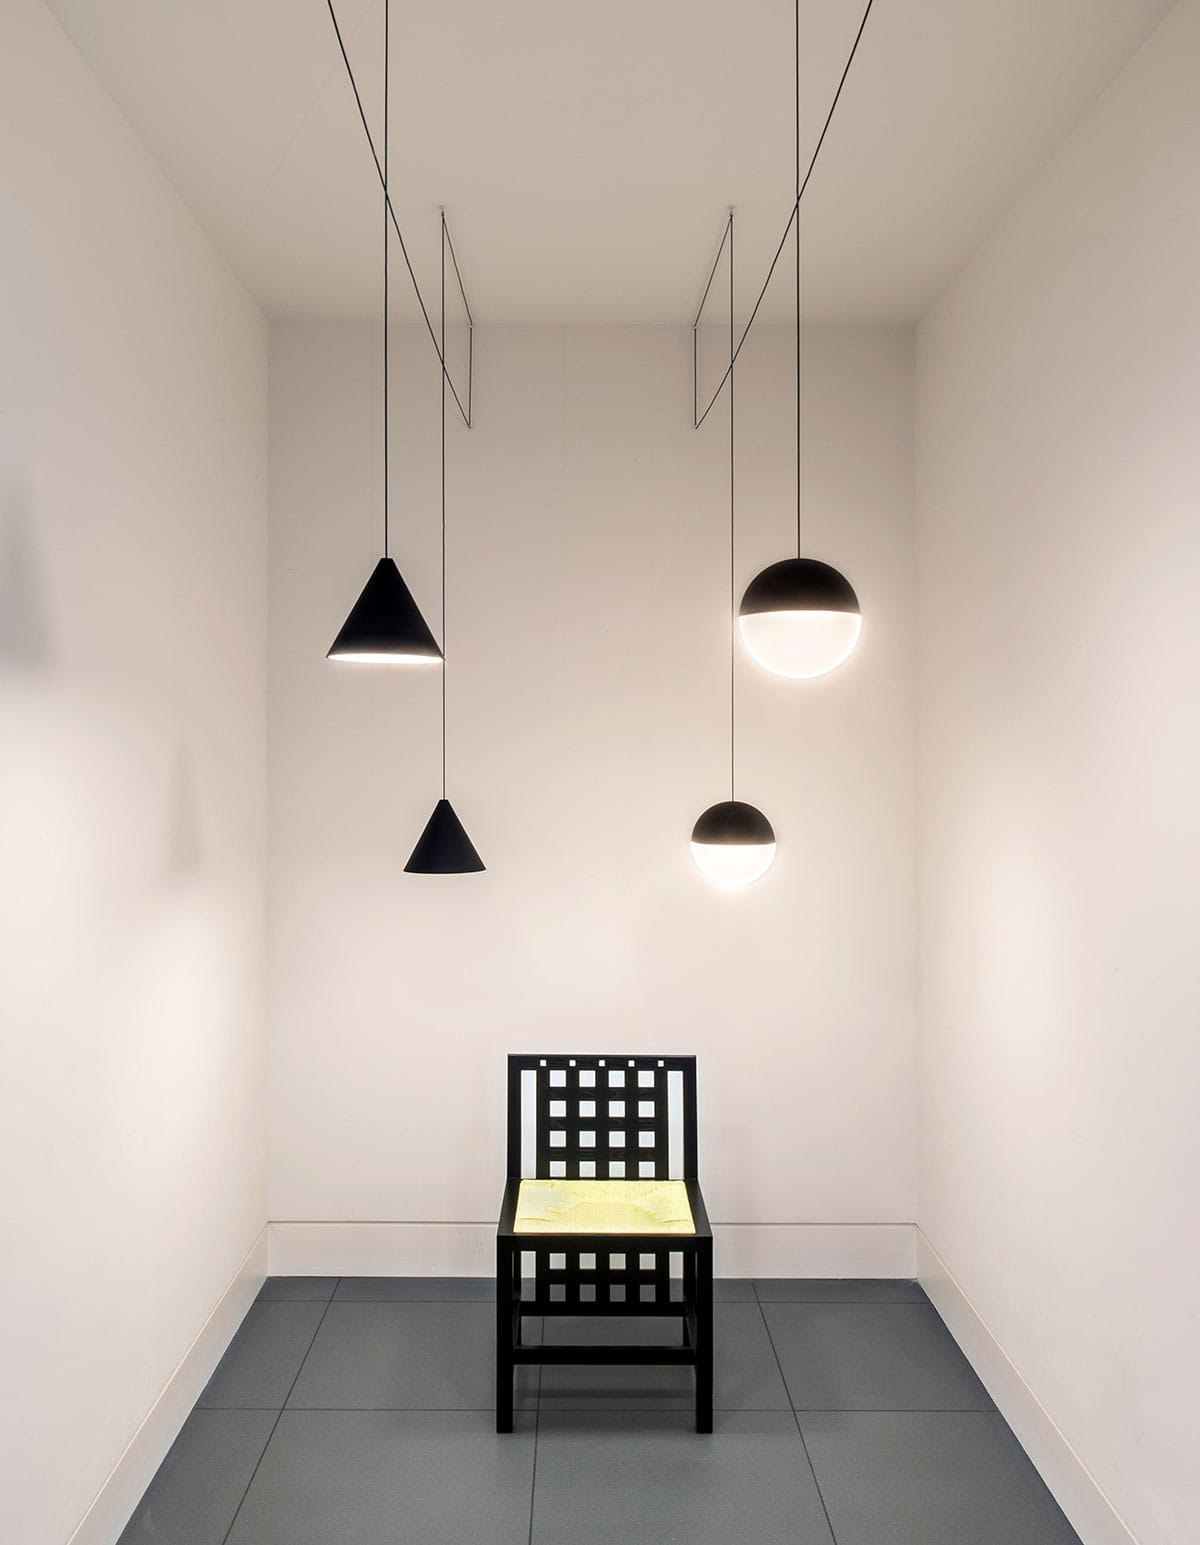 String Lights – minimal and poetic in their design | Cross Border Conversations| Michael Anastassiades, Seema Puri Mullan | STIR